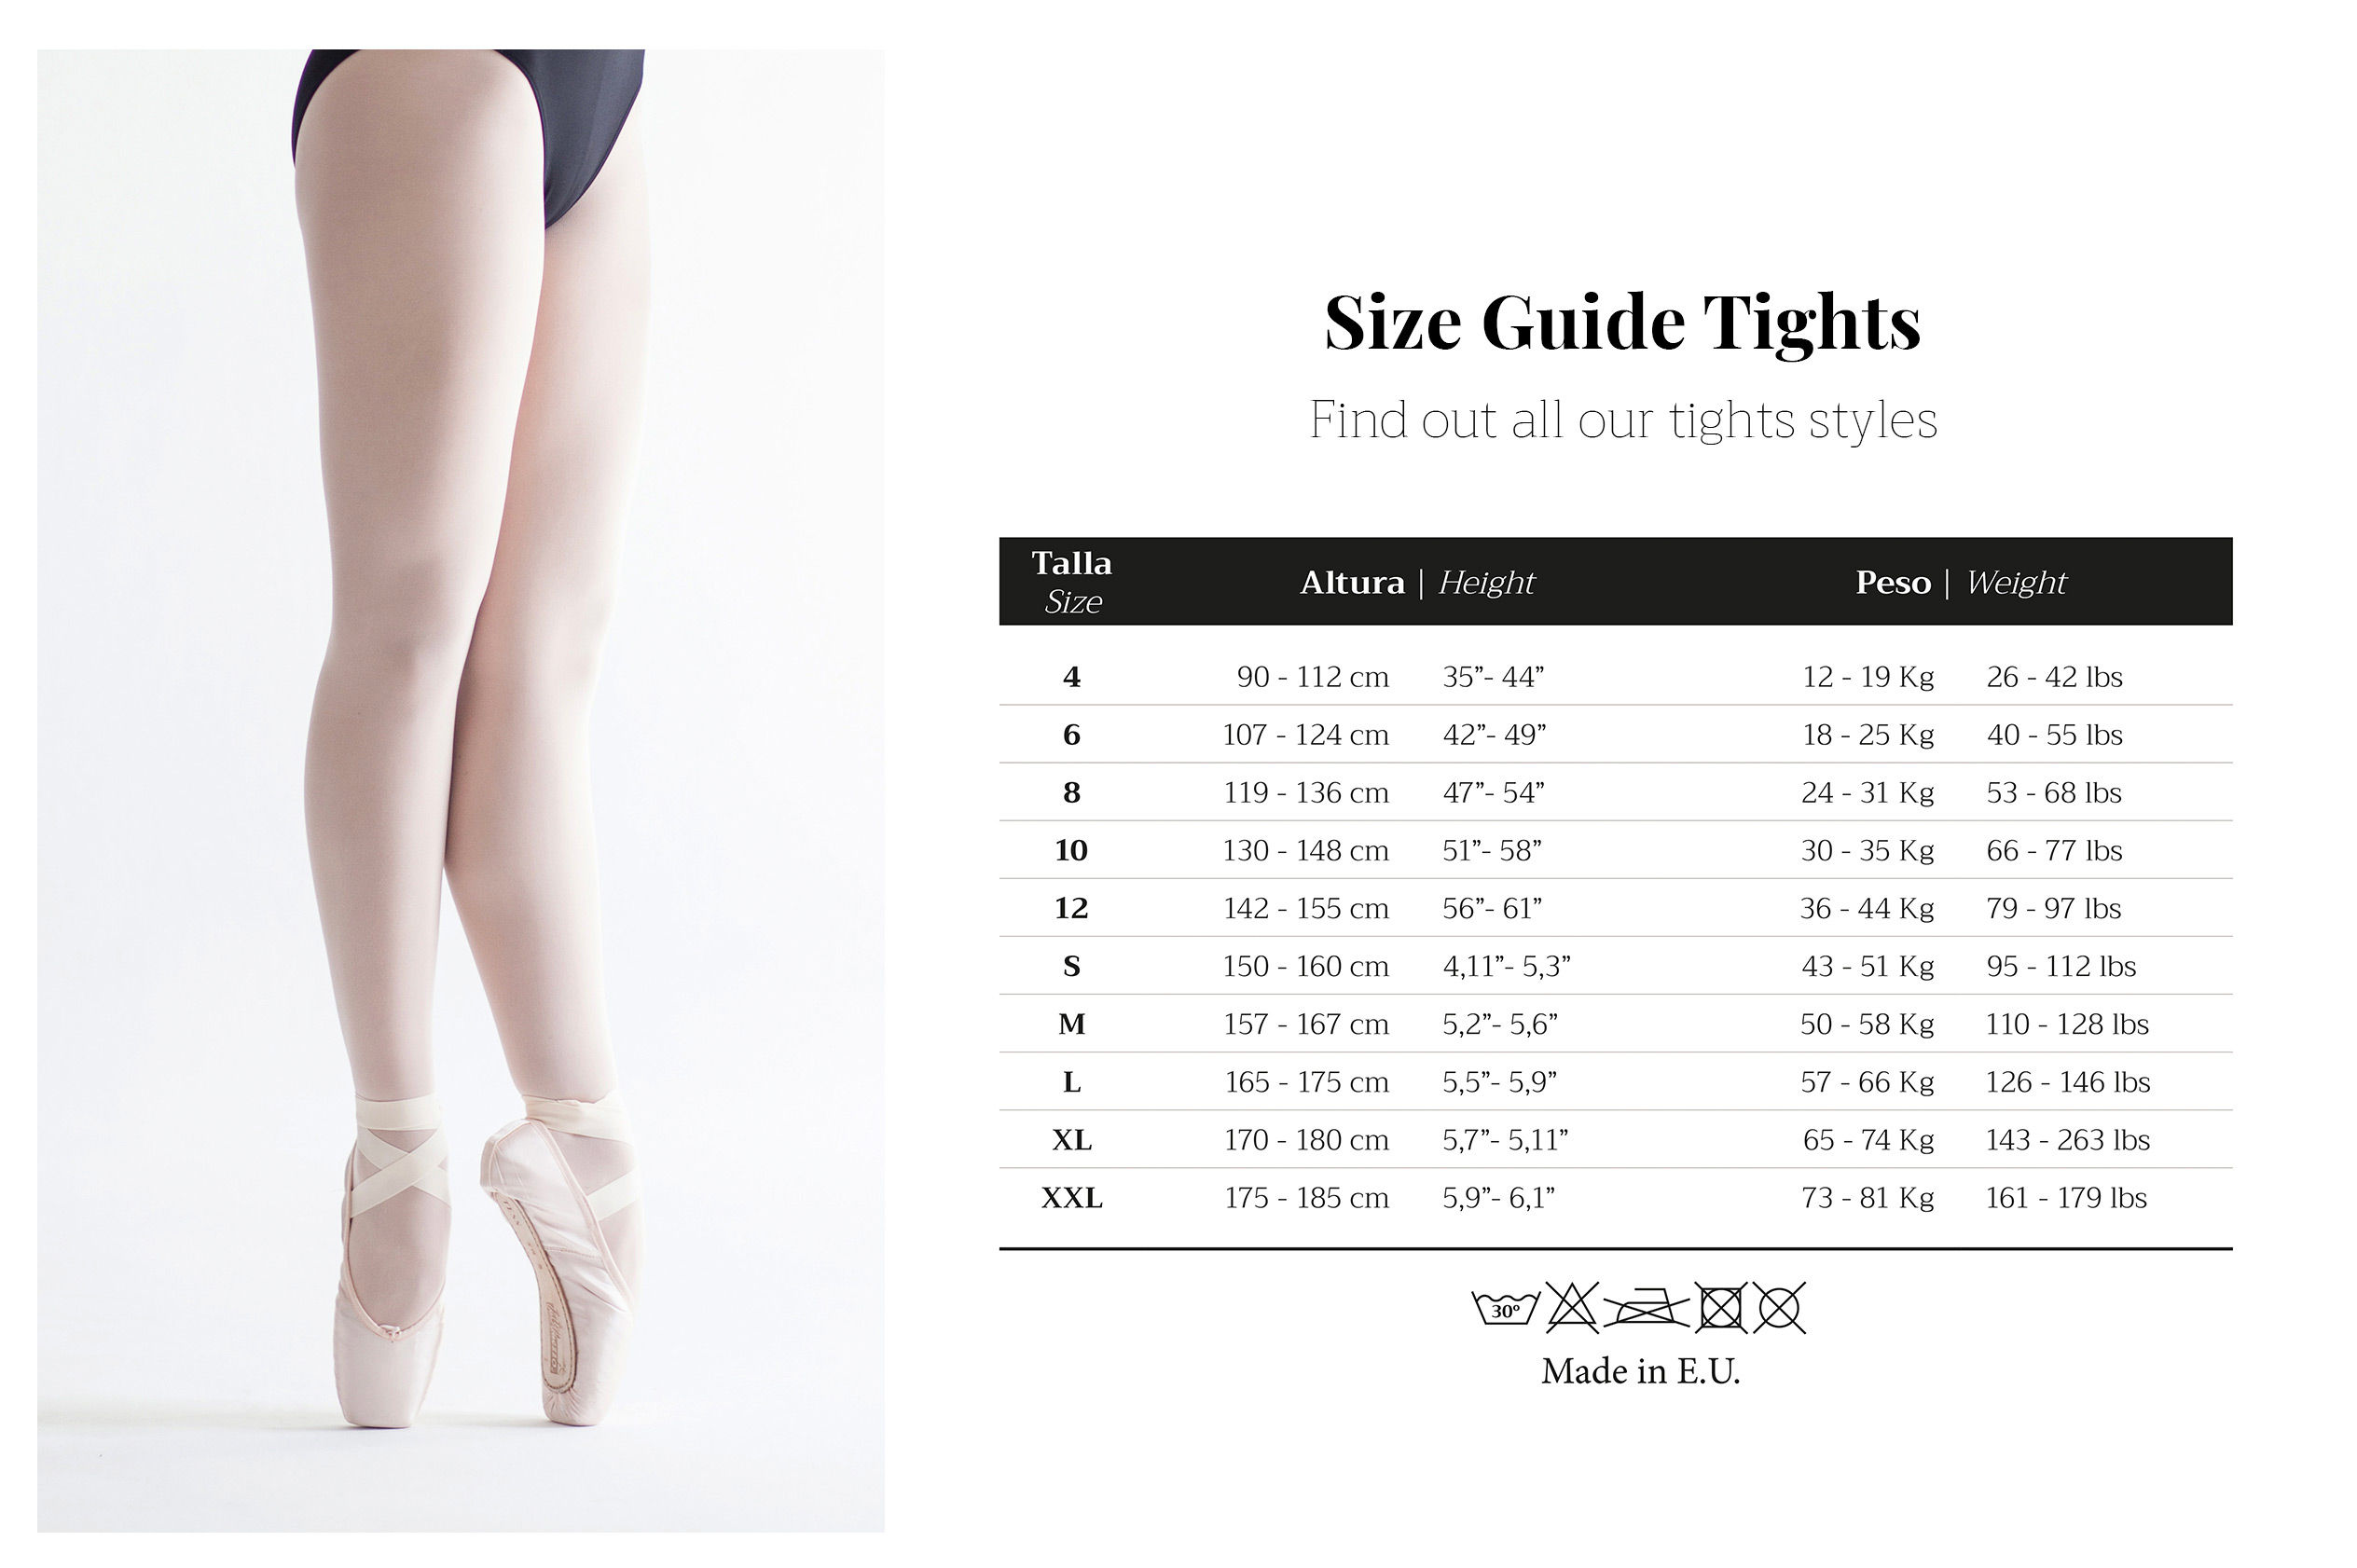 Size guide tights